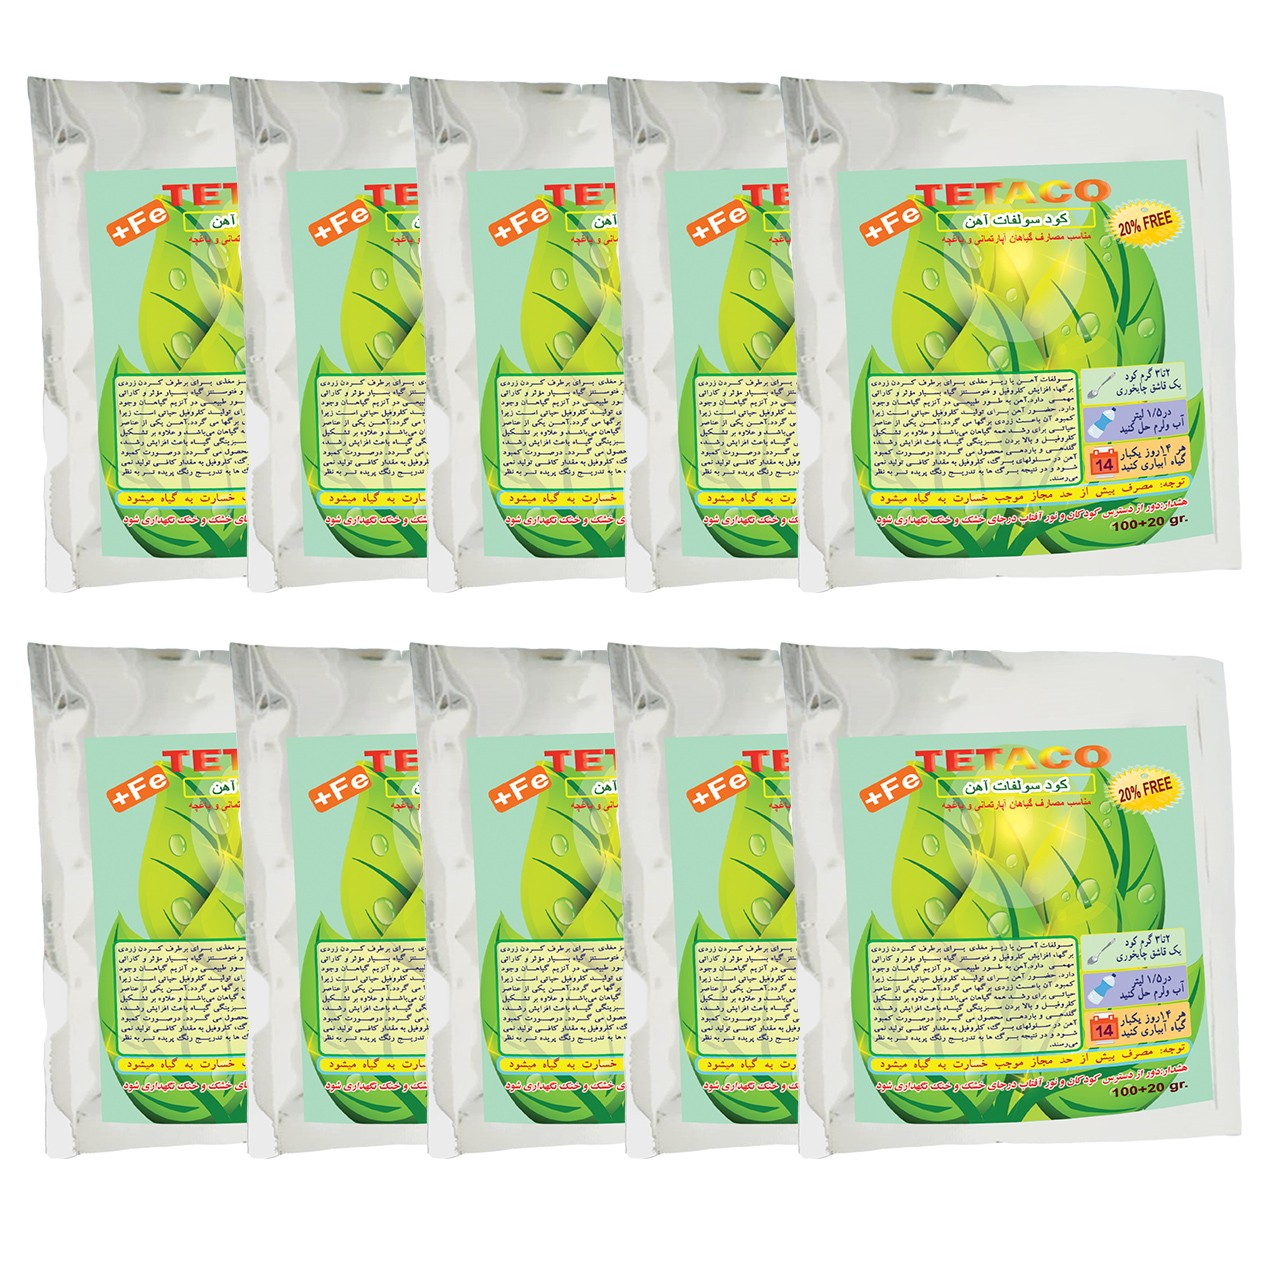 image number  1 products  Tetako iron sulfate fertilizer suitable for houseplants weighing 120 g